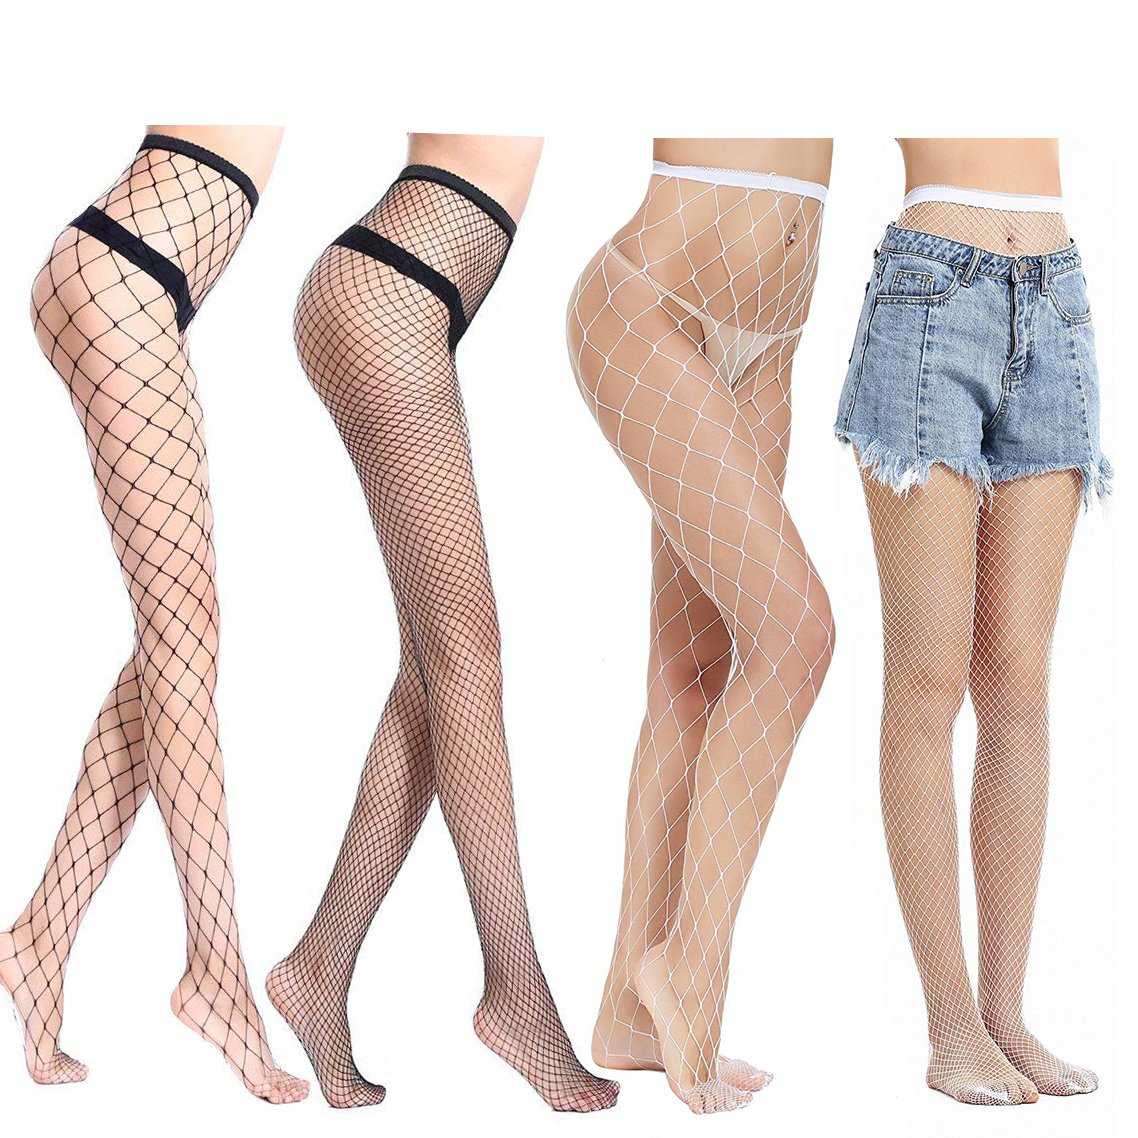 99e51f59231 Ypser Fishnet Tights Mesh Stockings Sparkle Rhinestone Glittering Net  Pantyhose  Amazon.co.uk  Clothing